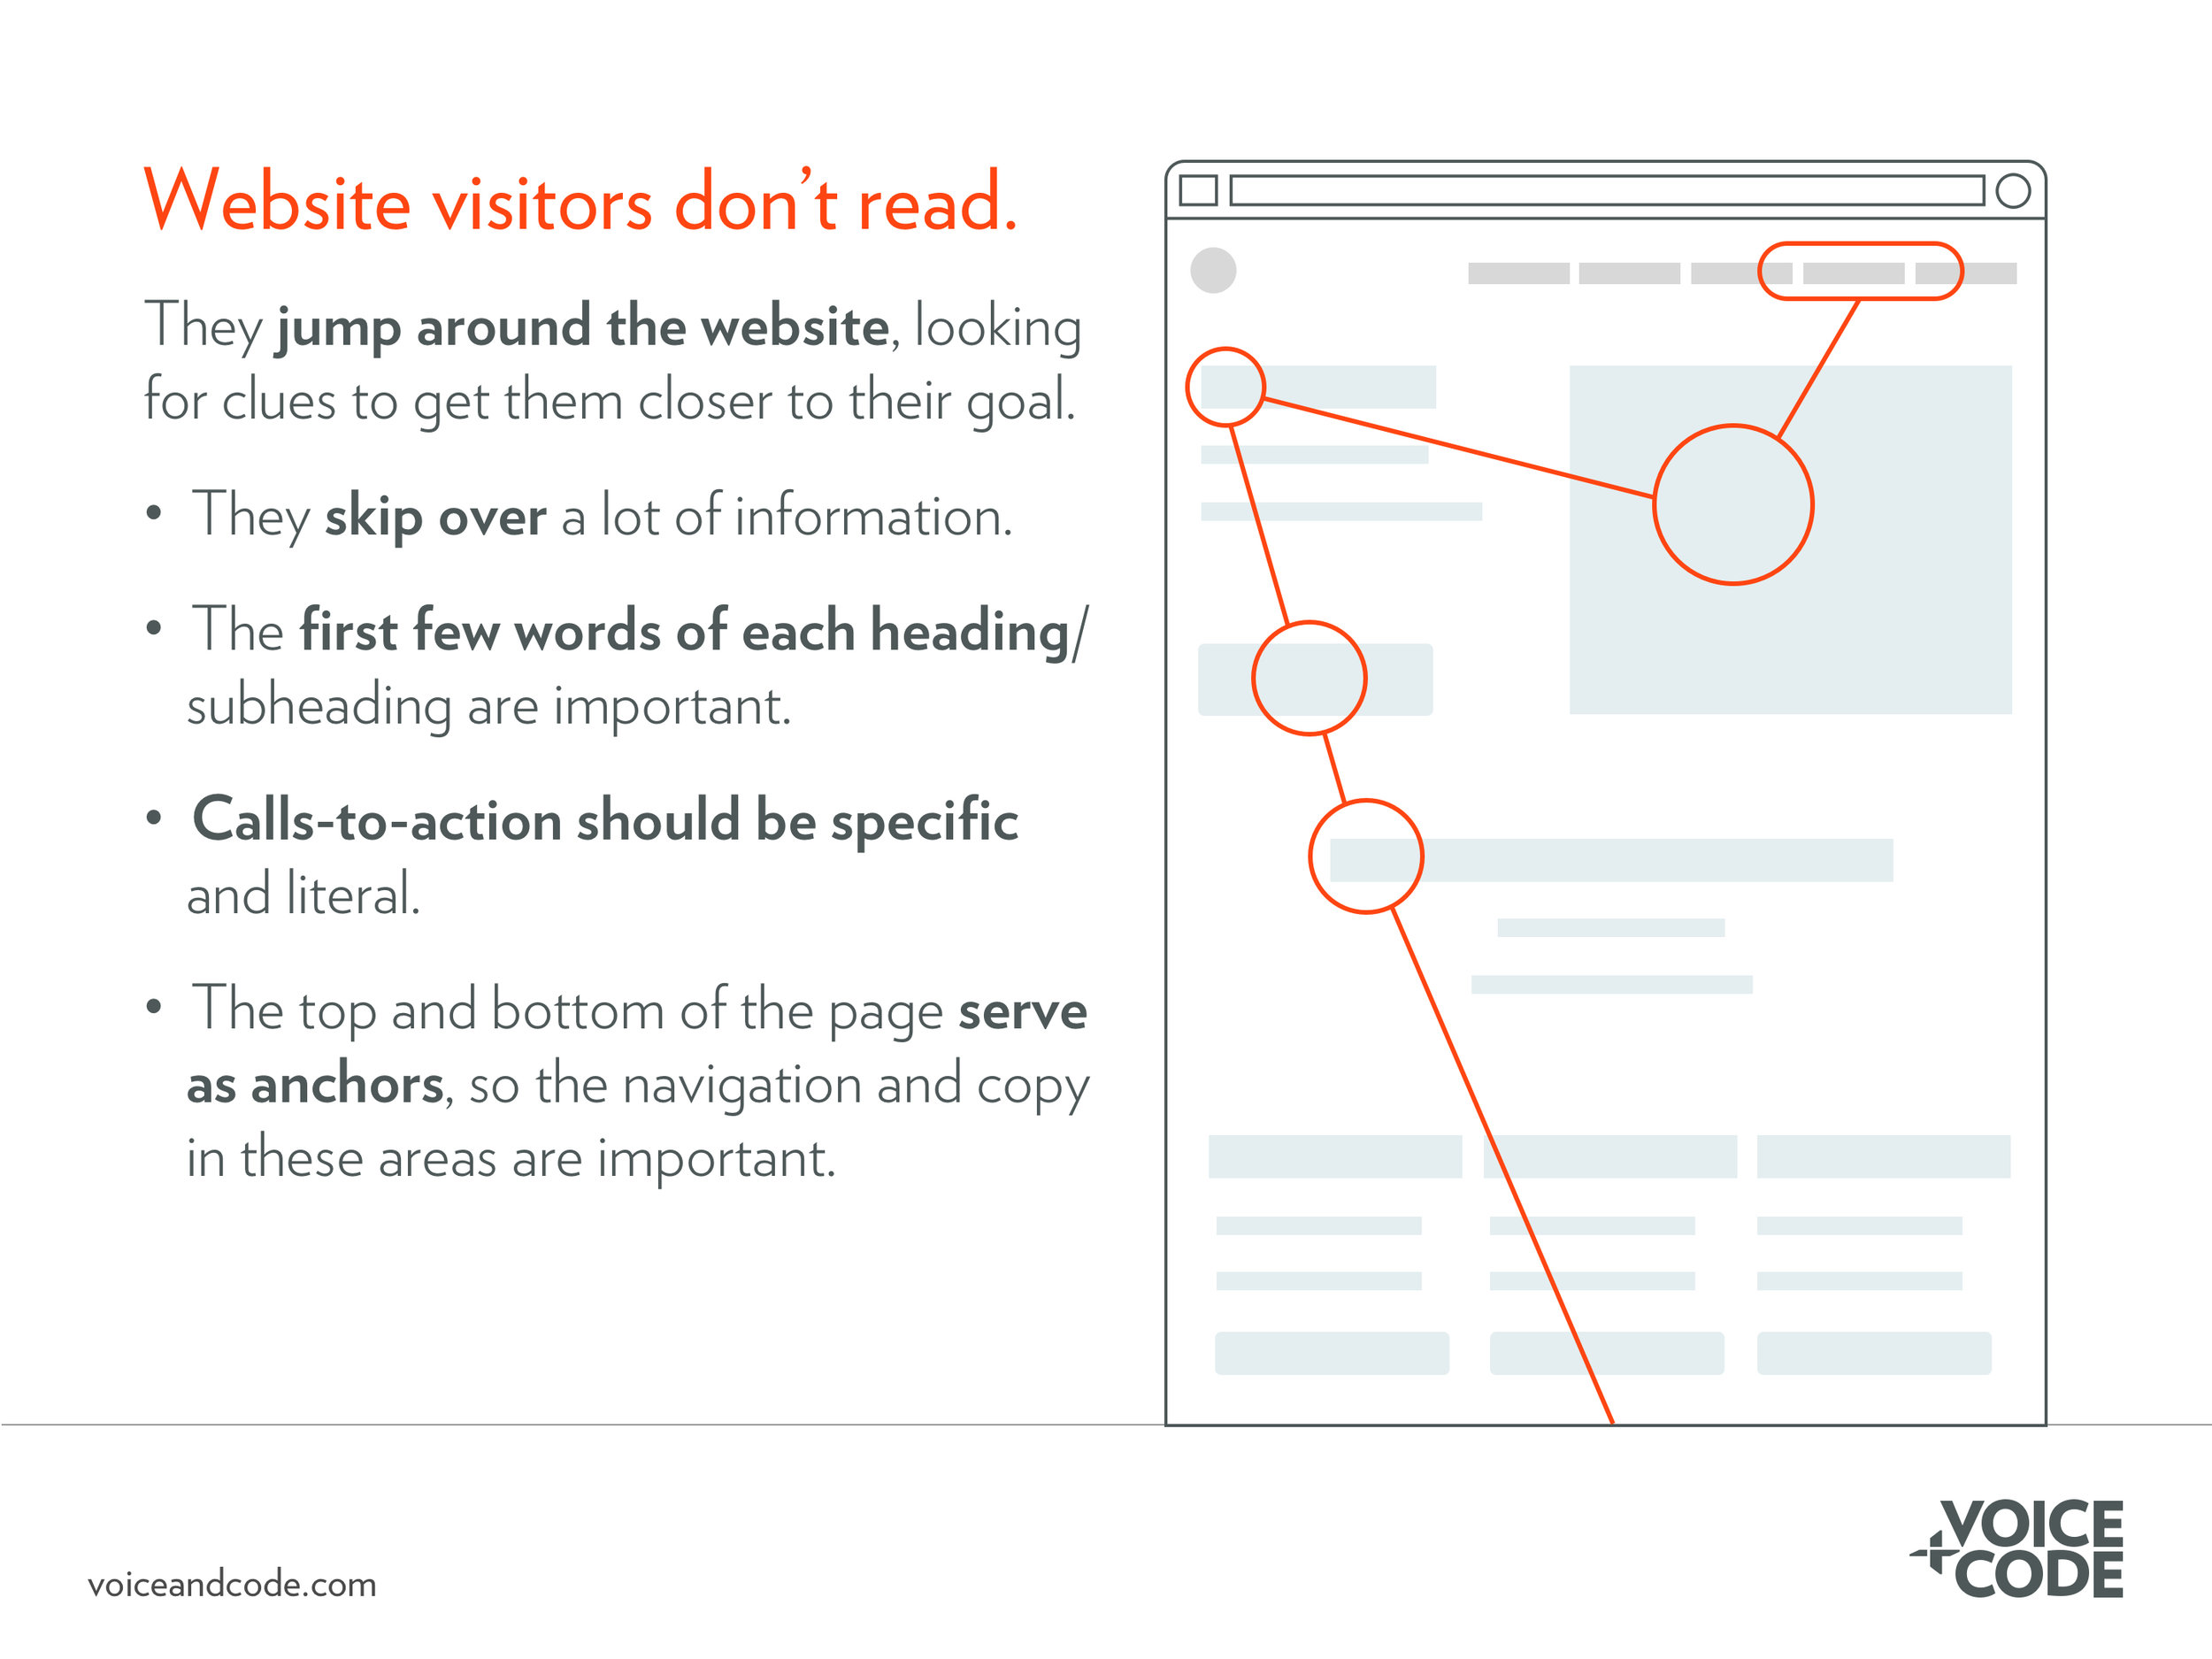 Website visitors don't read, they jump